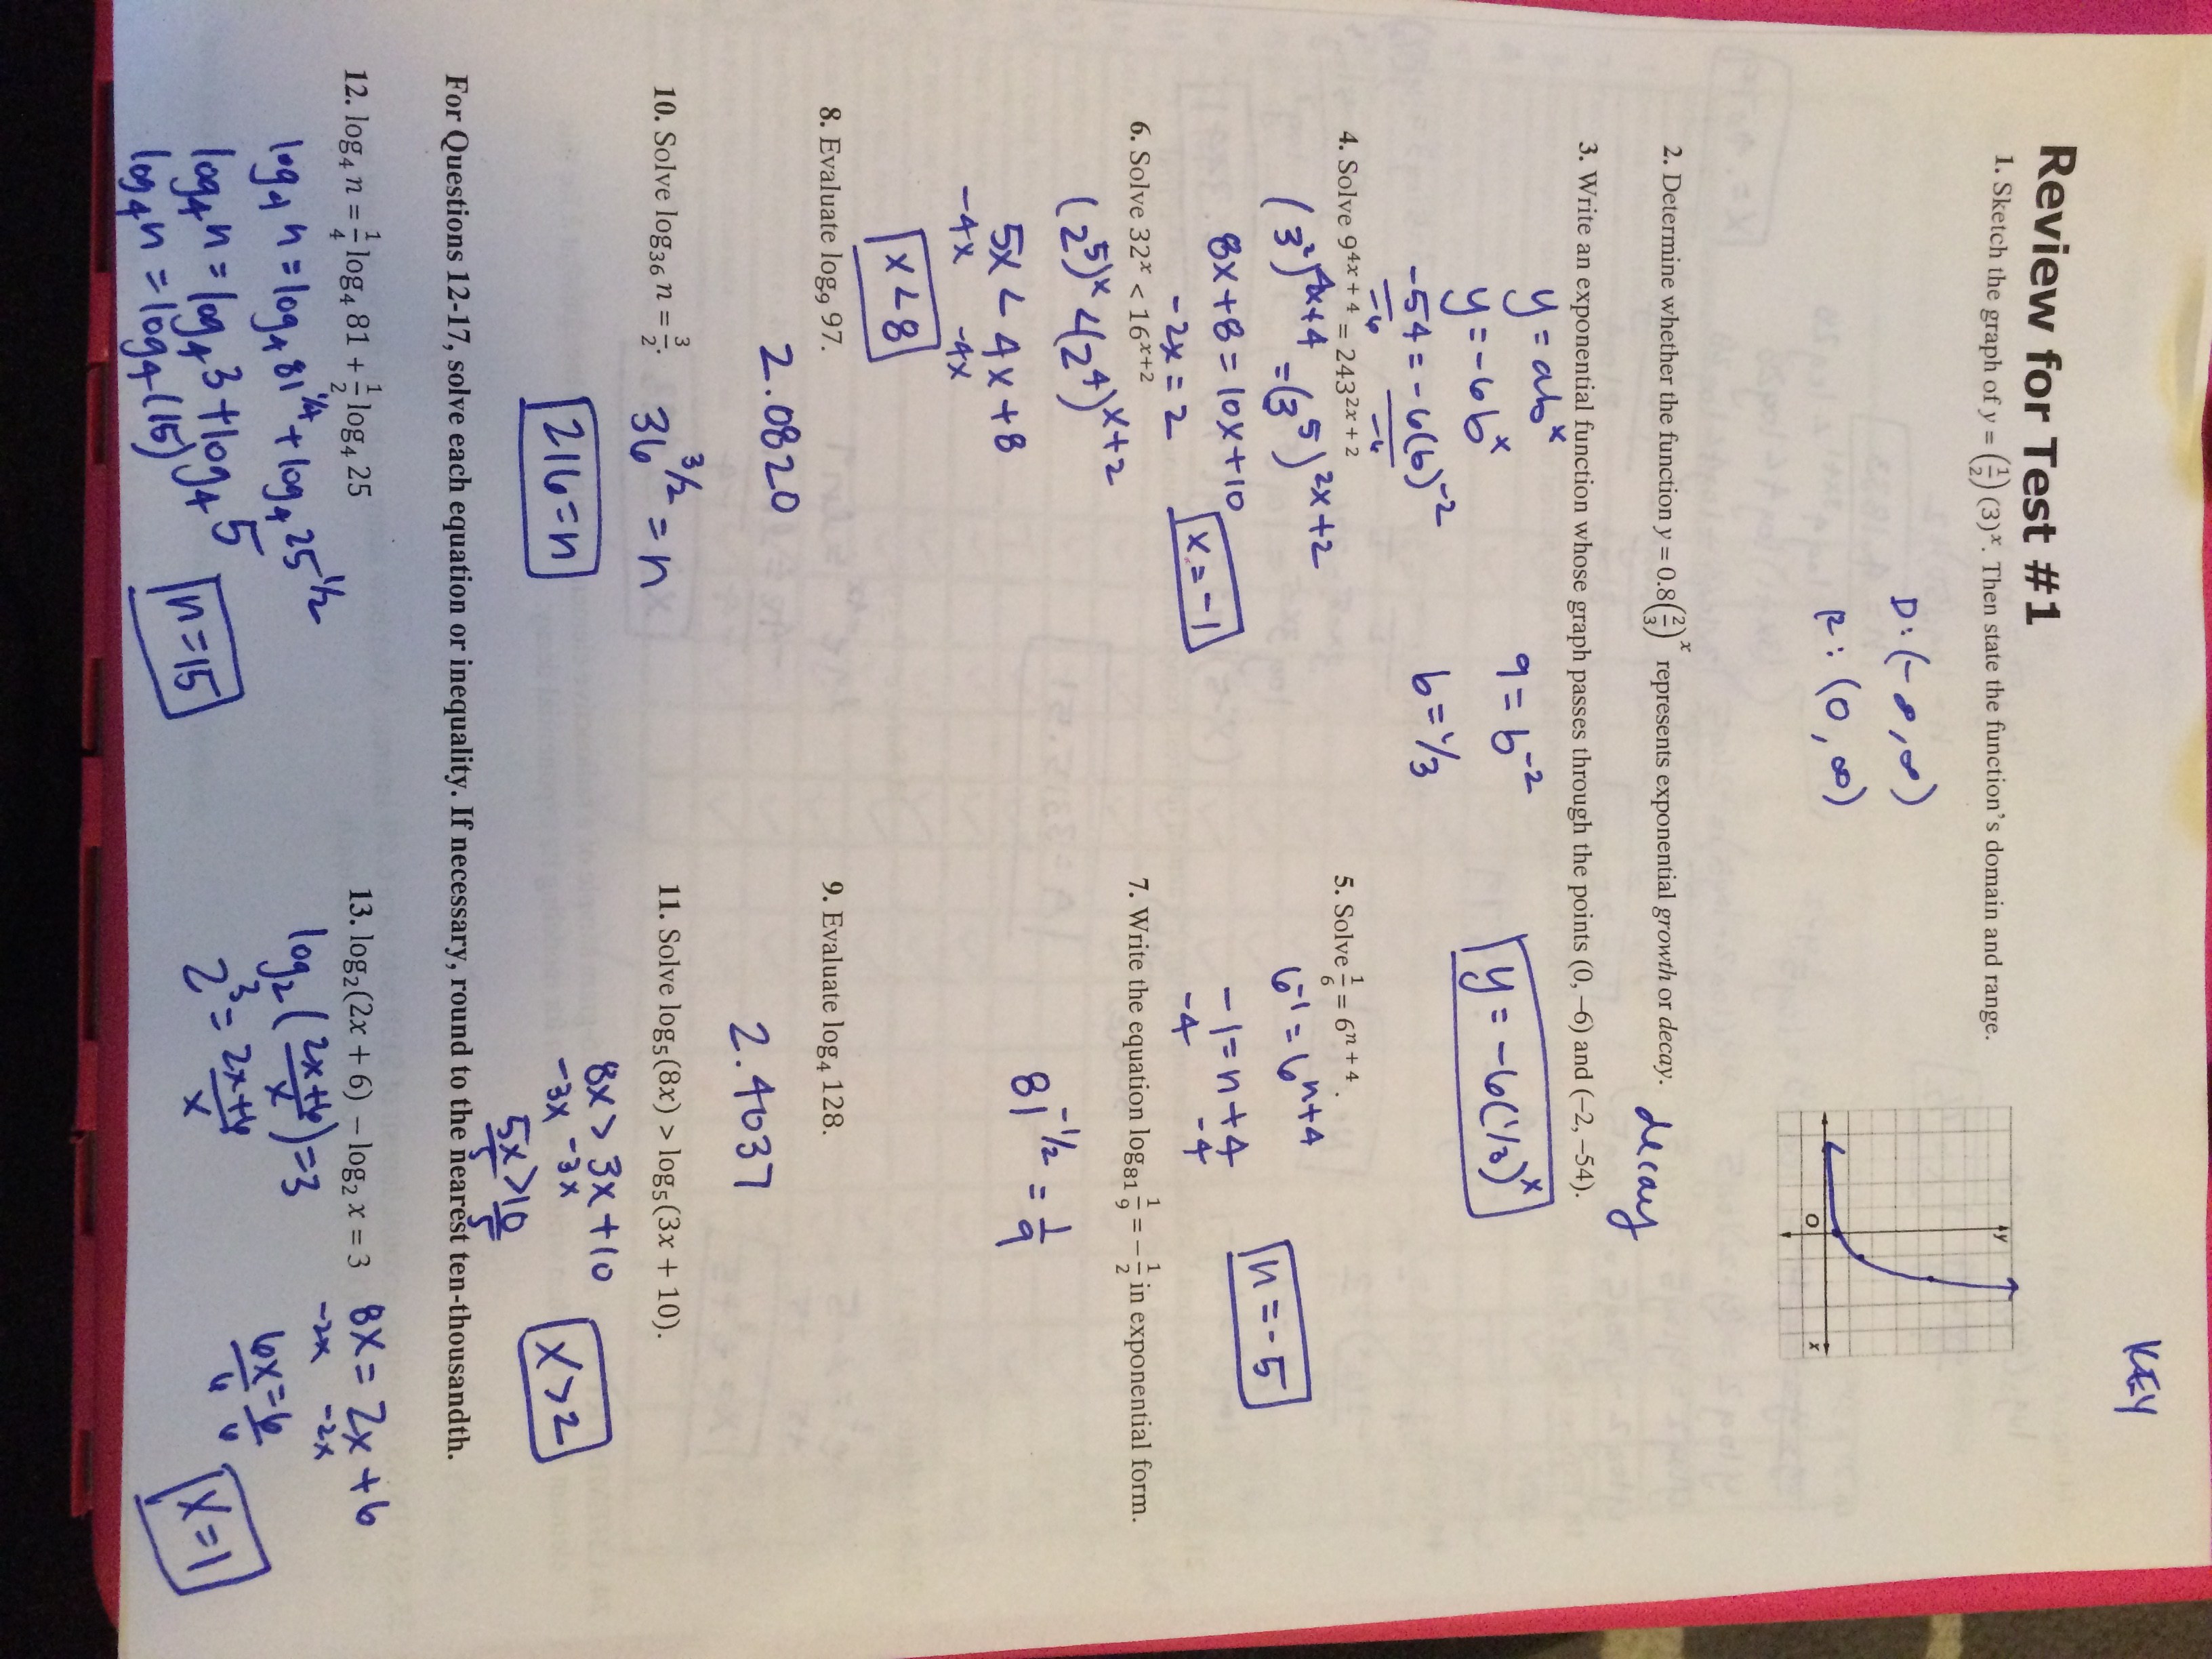 Unit 1 Test Study Guide Equations And Inequalities Answers